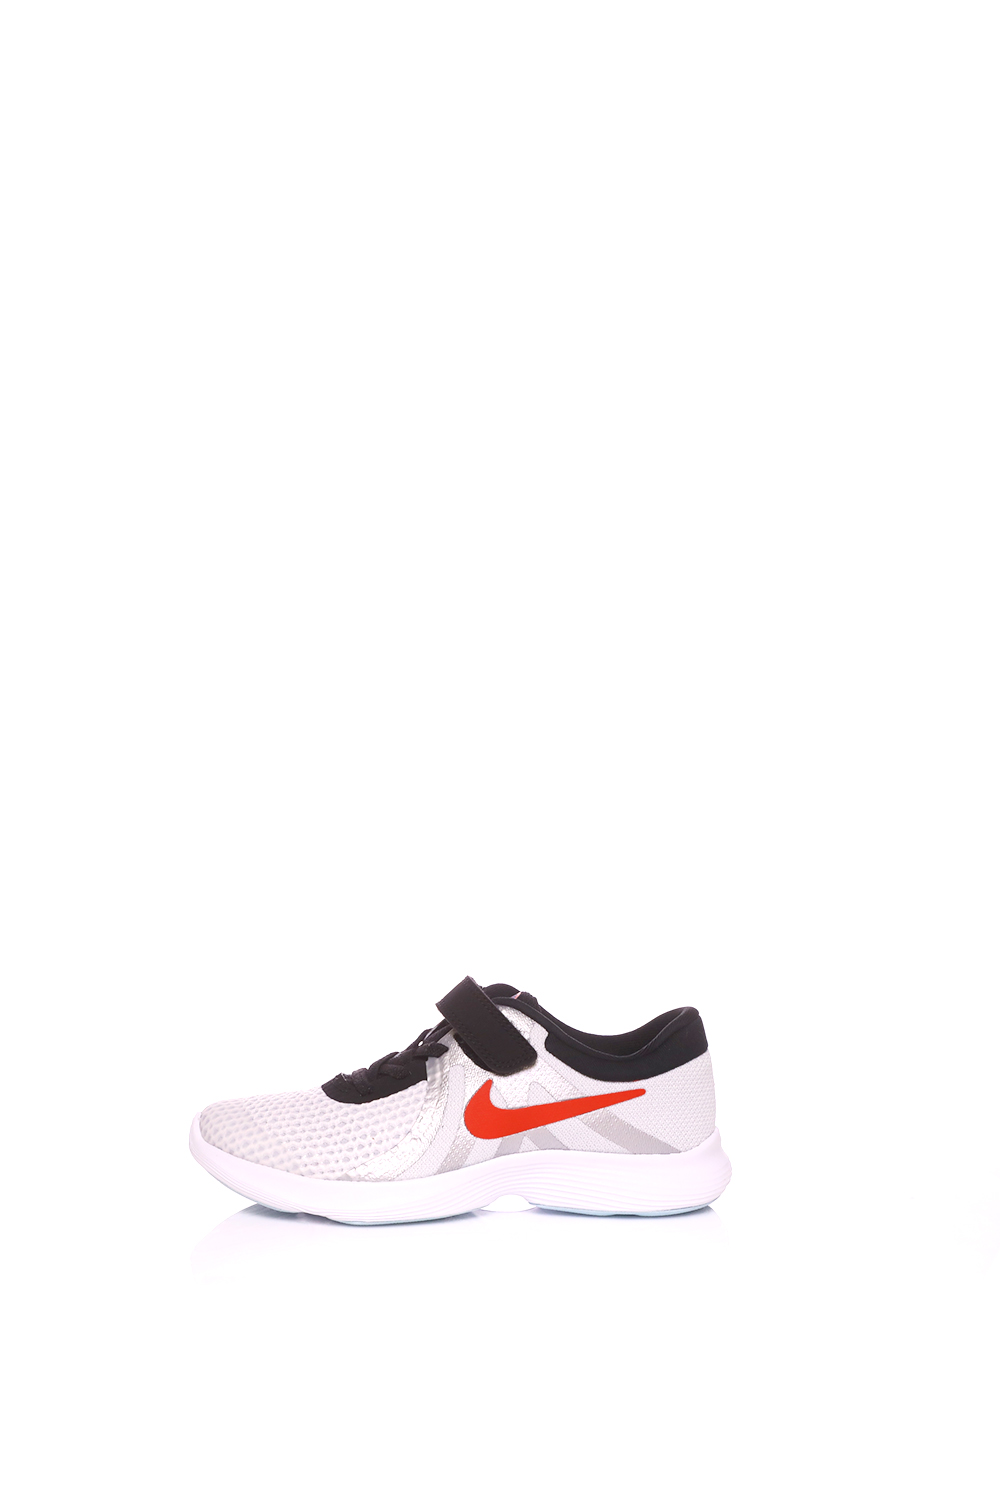 75a17f532f Collective Online NIKE – Παιδικά παπούτσια NIKE REVOLUTION 4 SD λευκά